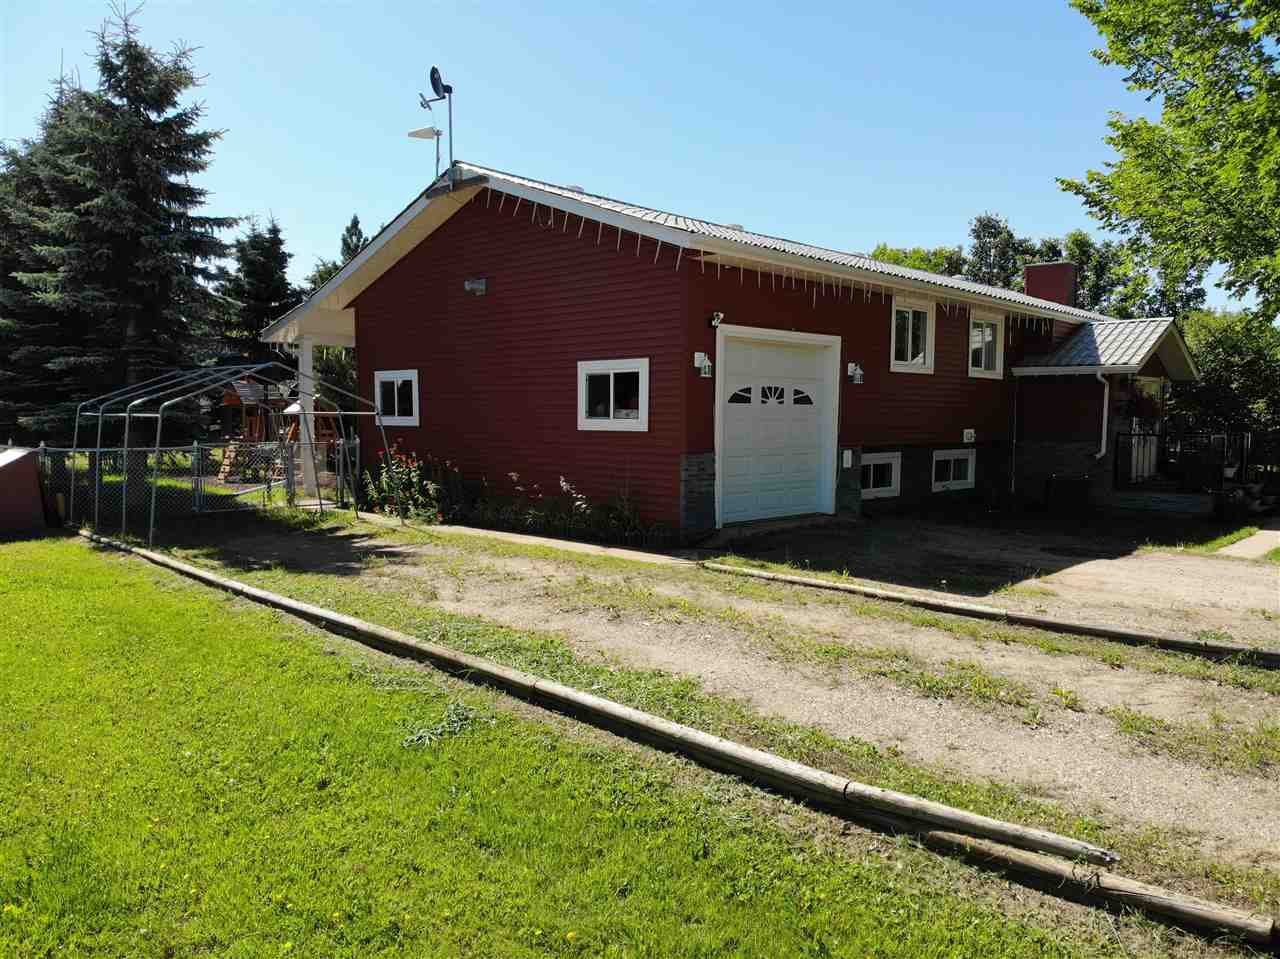 Main Photo: 4831 51 Street: Amisk House for sale : MLS®# E4208166